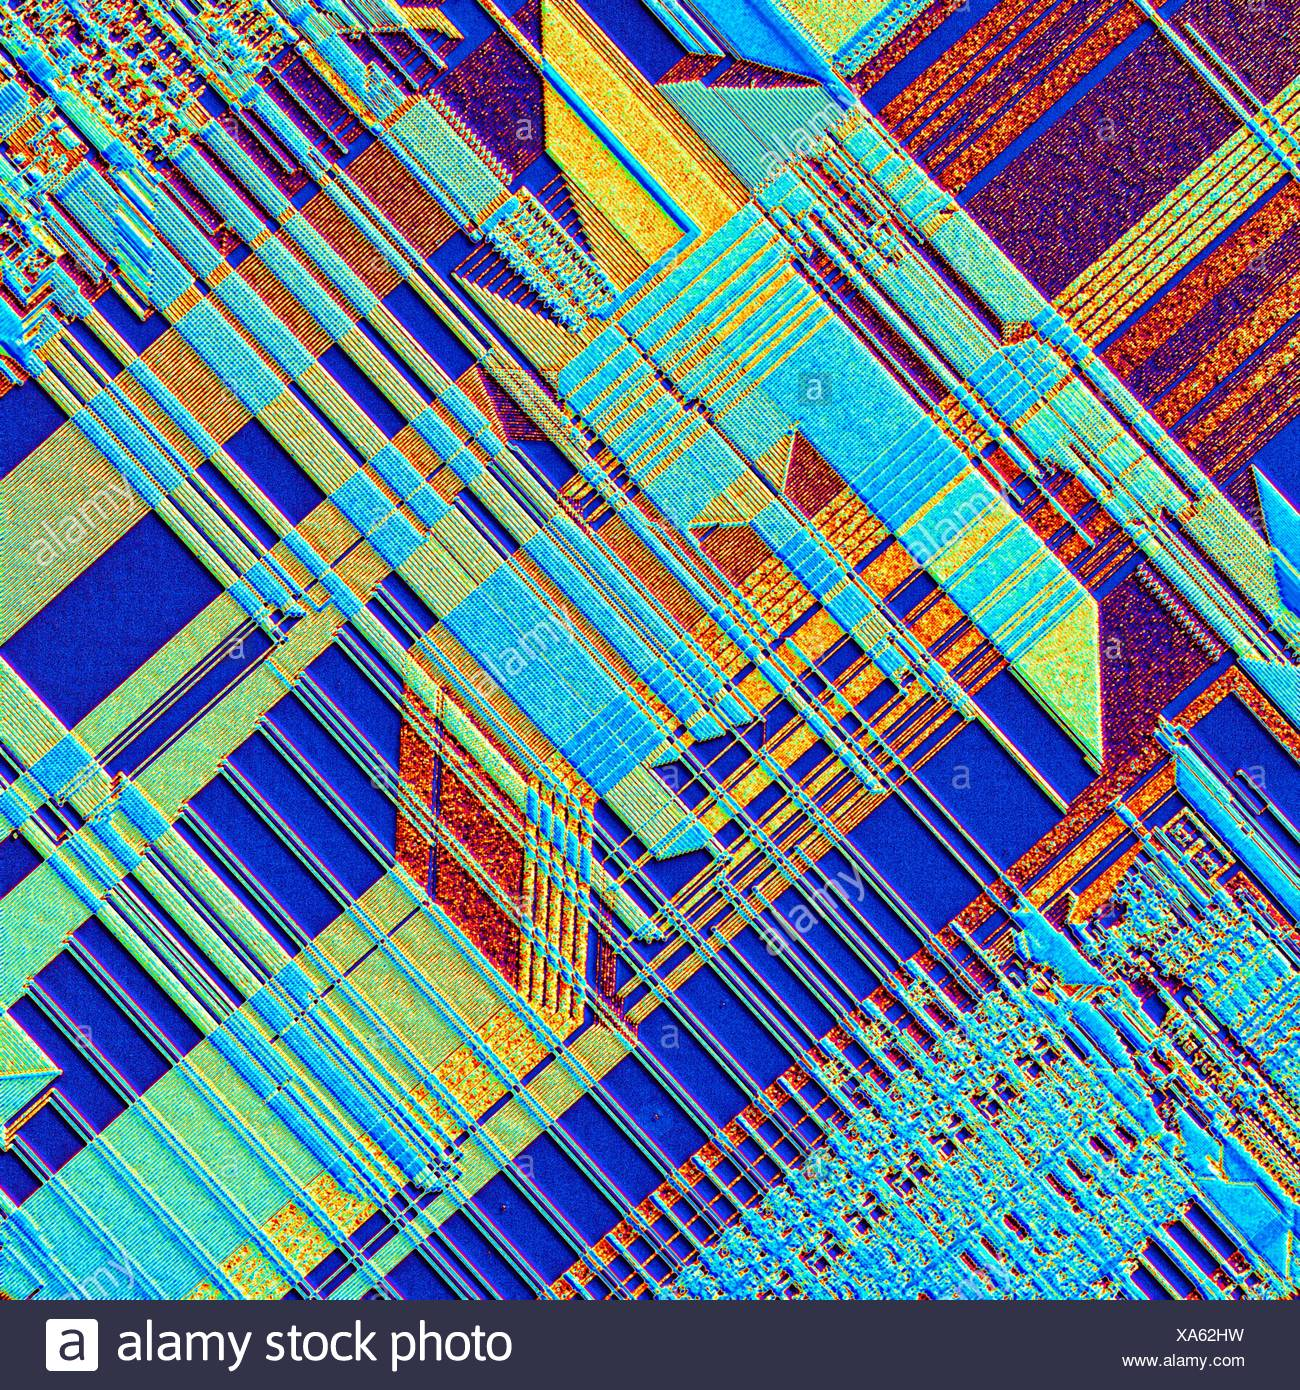 Computer chip. Coloured light micrograph of the surface of an integrated chip from a computer. This integrated circuit has been made by imprinting microscopic electronic components onto the surface of a wafer of silicon. Integrated circuits can be made mu - Stock Image